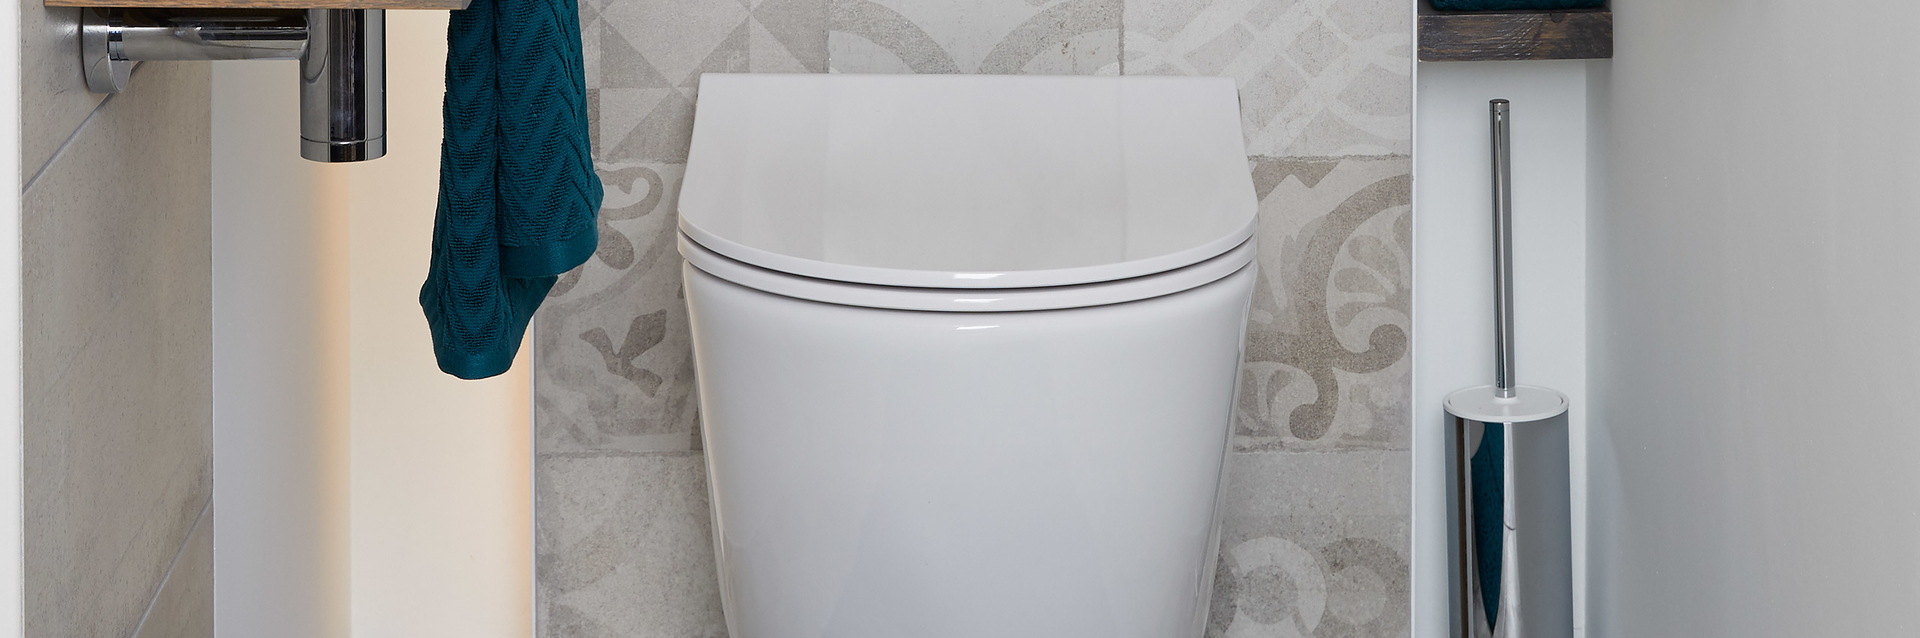 Mix & Match Toilet - Mix & Match Toilet